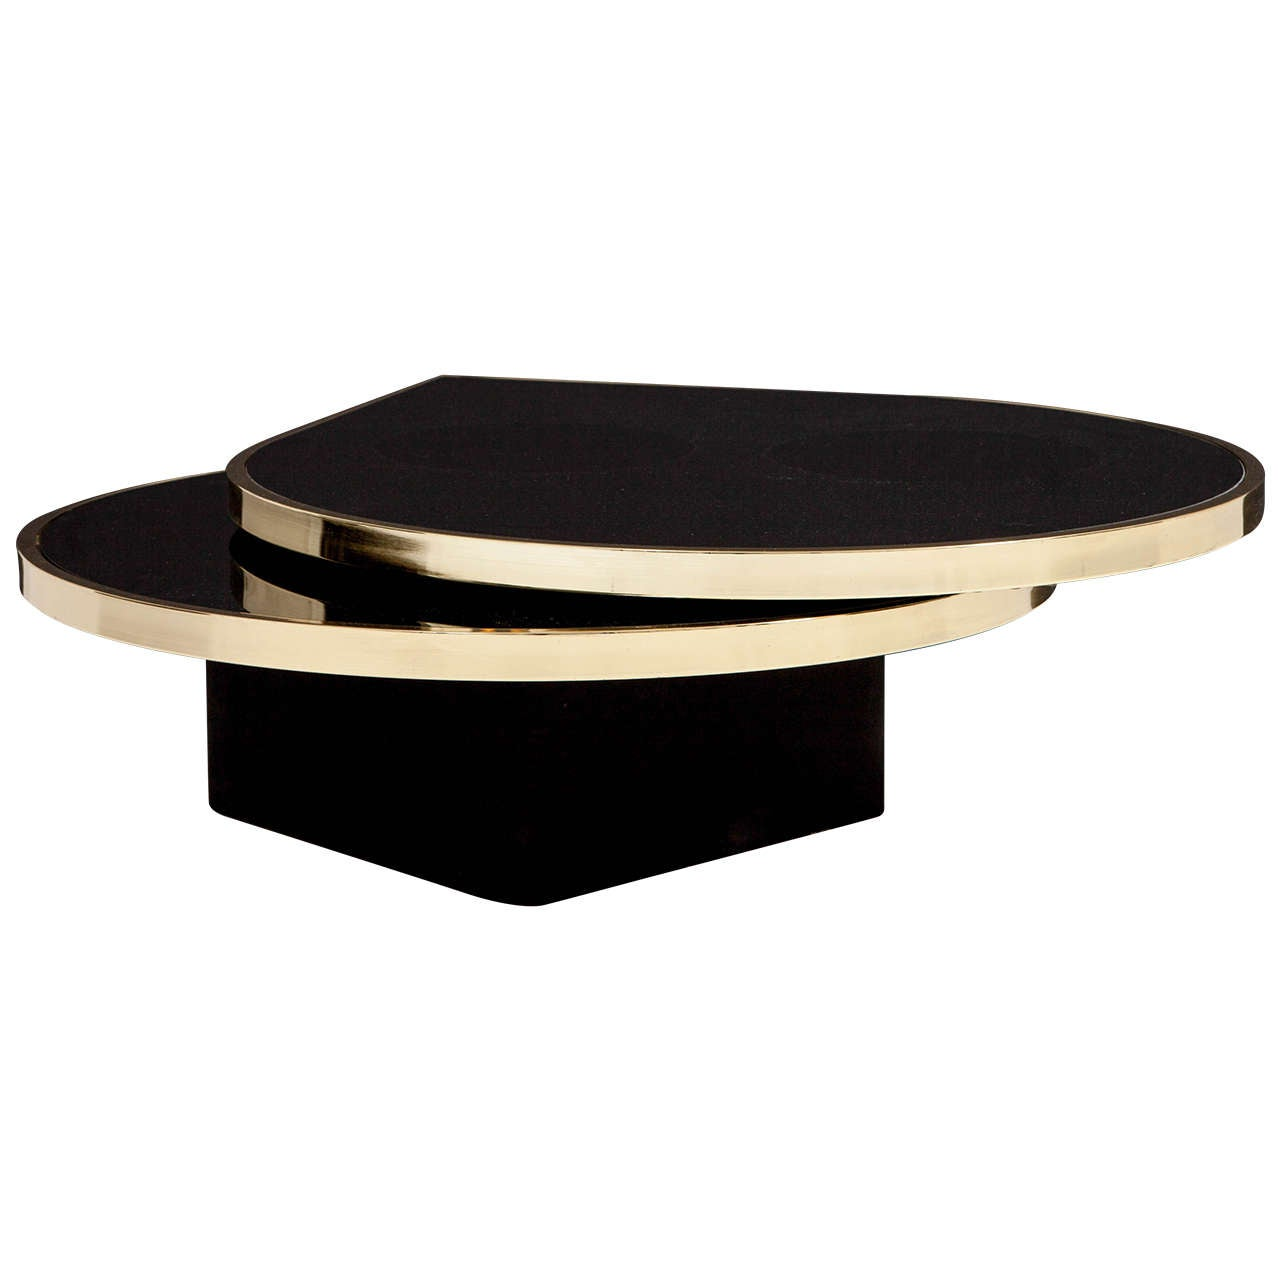 Black Glass And Brass Teardrop Swivel Cocktail Table By Dia Signed At 1stdibs